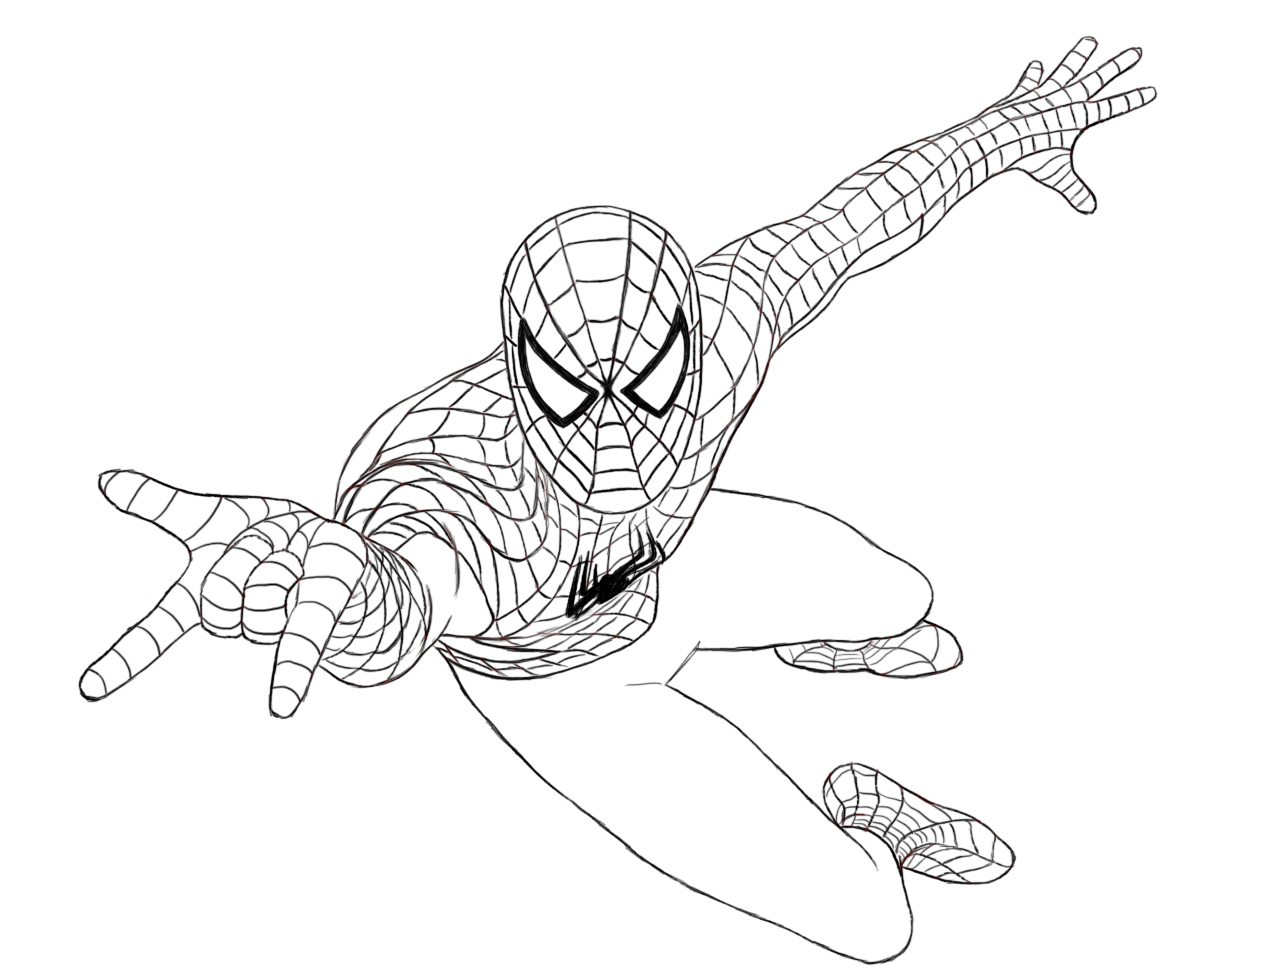 Spiderman Coloring Pages For Kids Free Printable Spiderman Coloring Pages For Kids